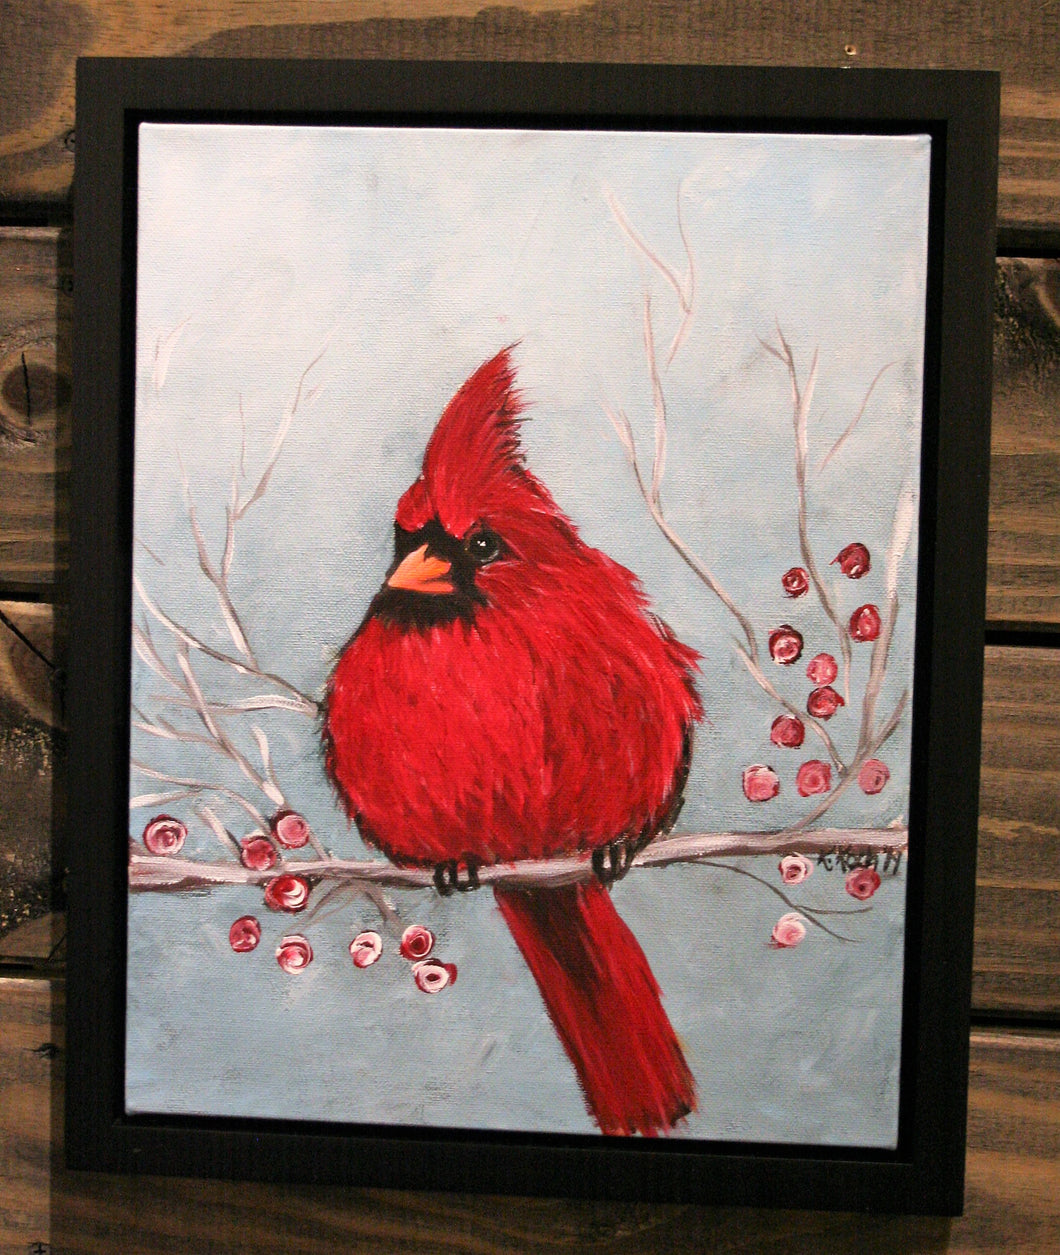 Fluffed Cardinal Acrylic Painting Class - Saturday, January 19th at 11 a.m.